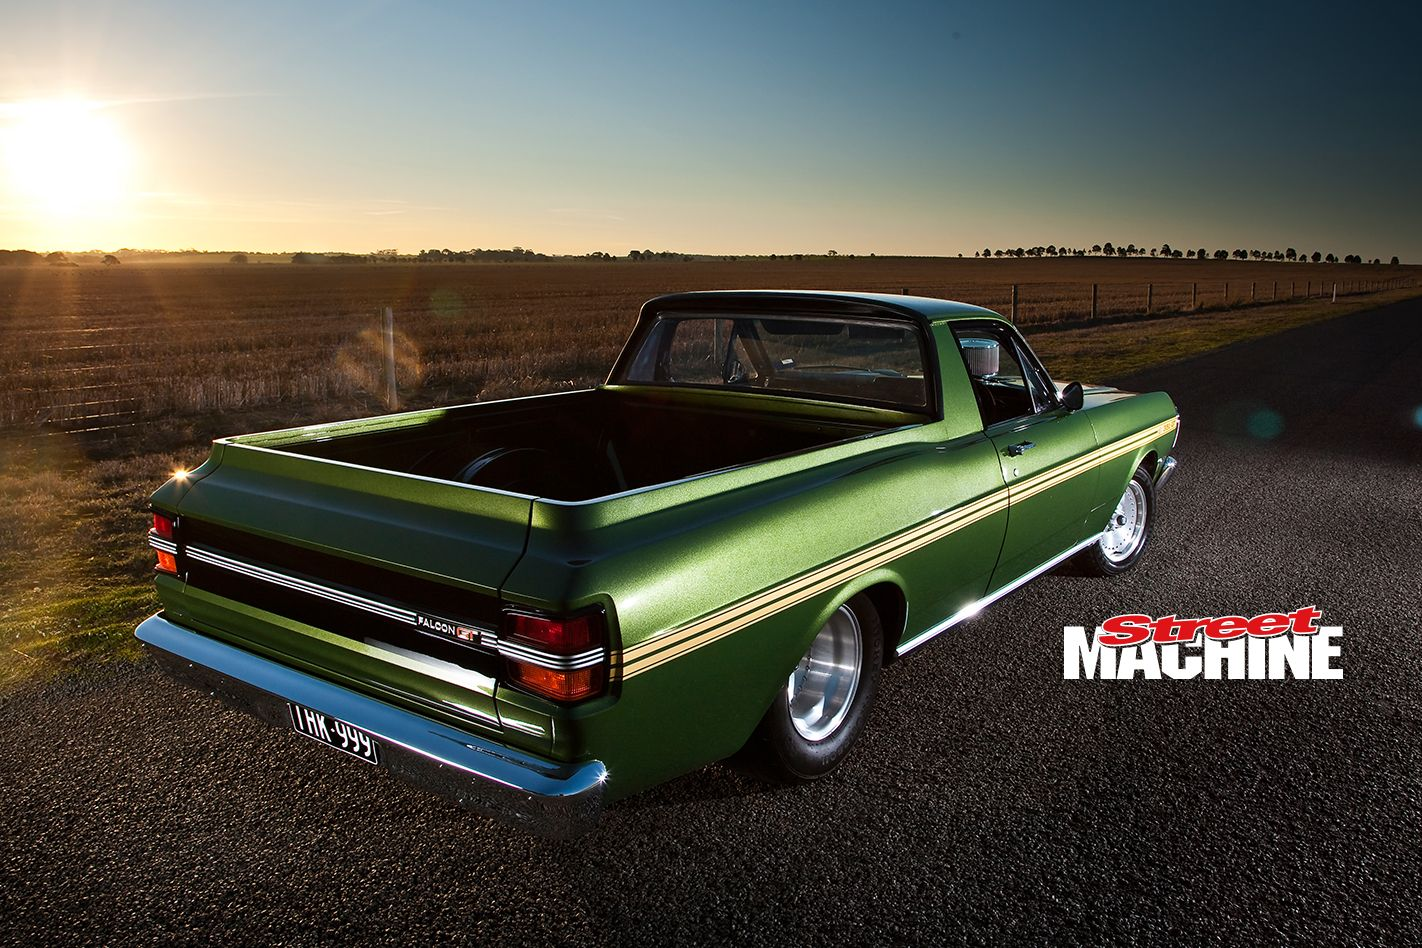 700hp 440 Cube Ford Xy Falcon Ute Aussie Muscle Cars Australian Cars Classic Cars Muscle